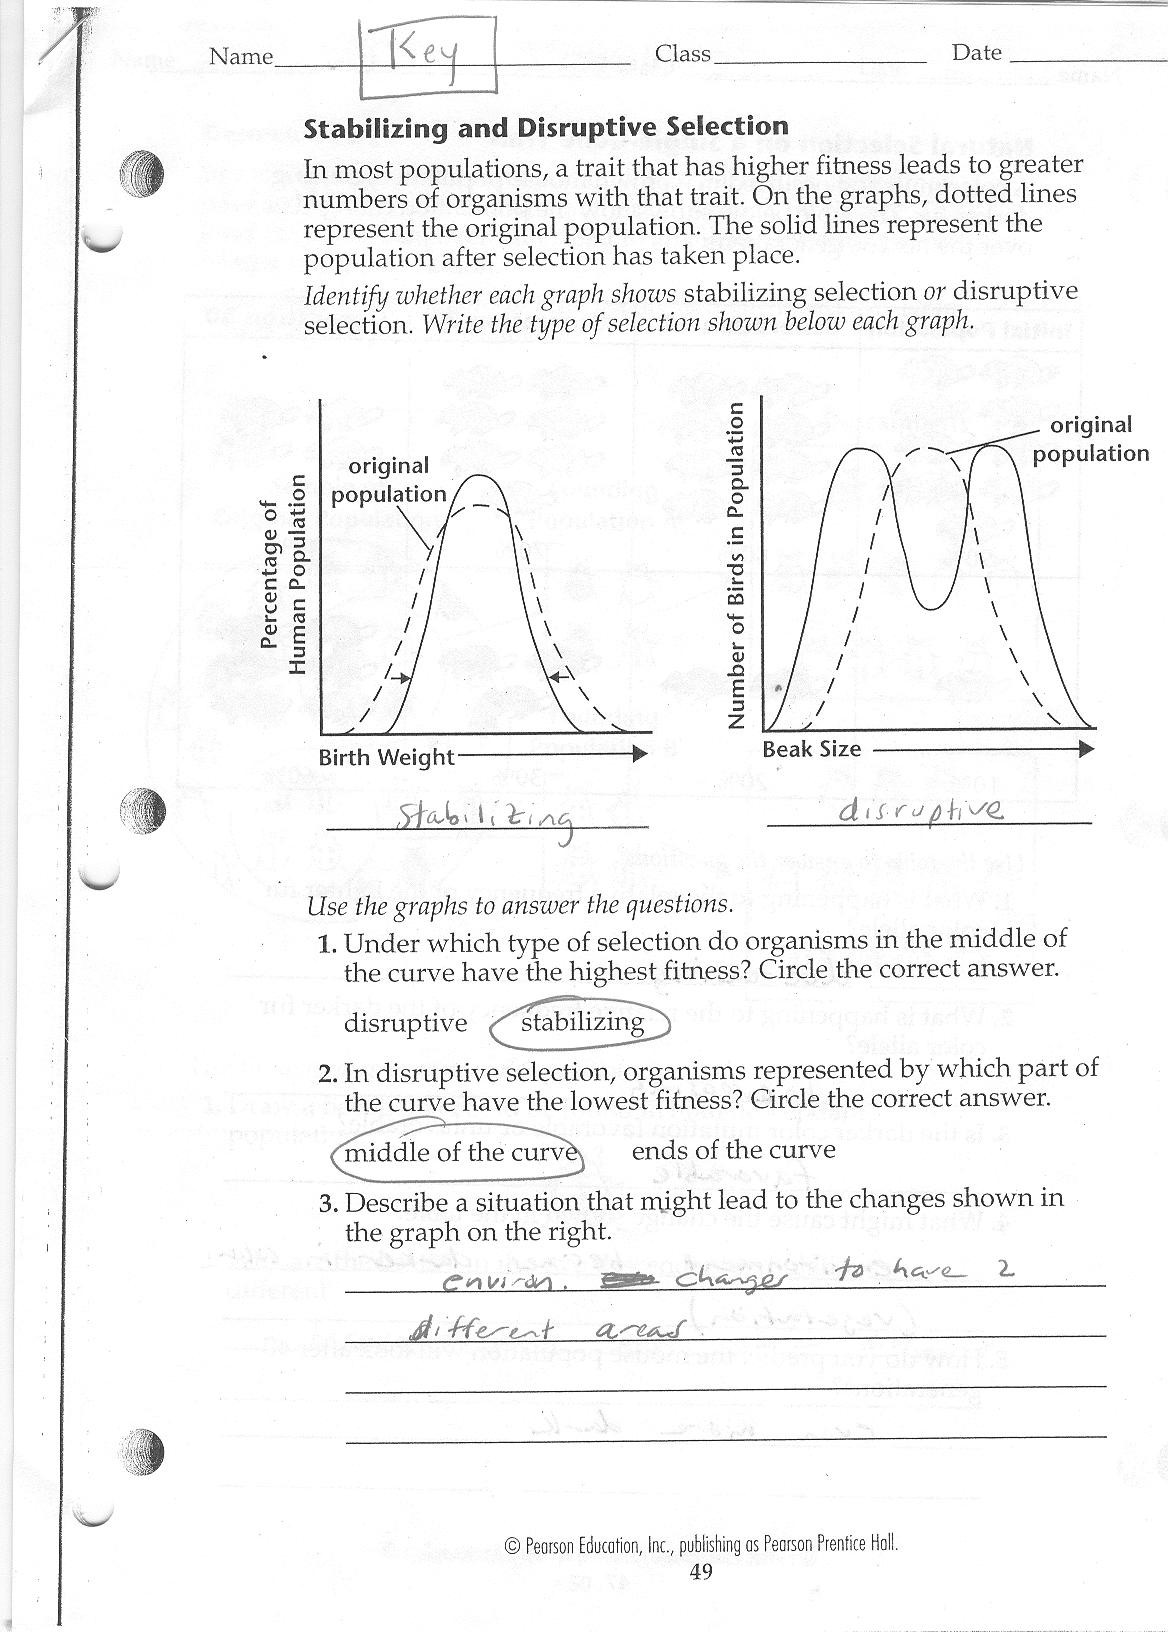 Enzyme Reactions Worksheet Answer Key Straubel Biology 2010 2011